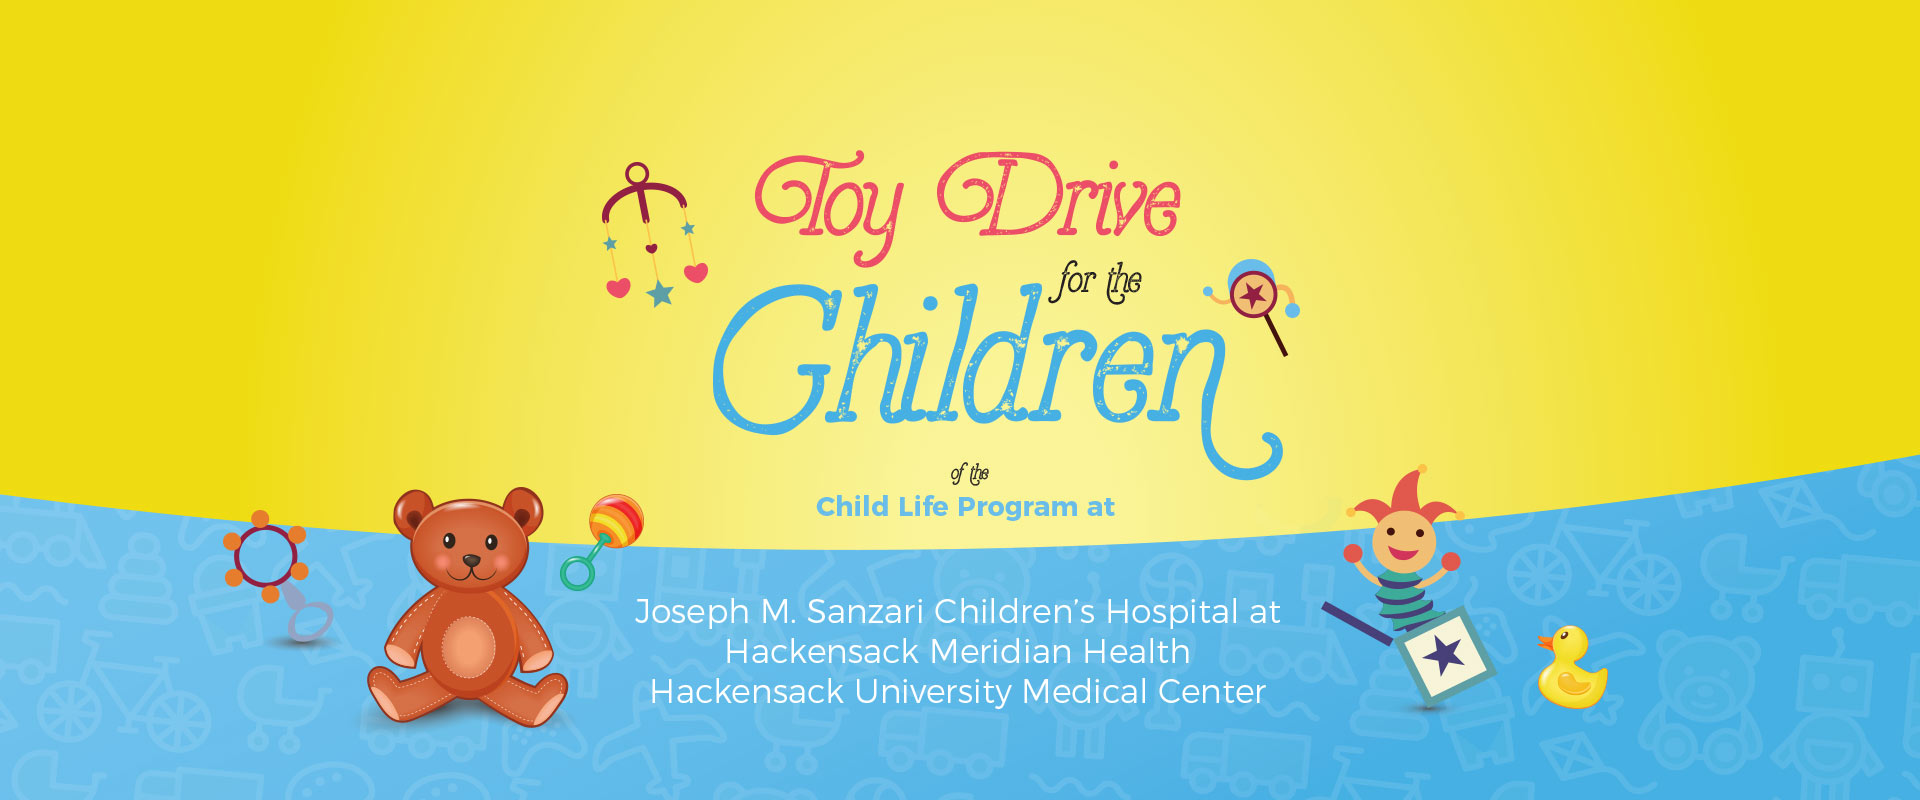 Toy Drive for the Children of the Child Life Program